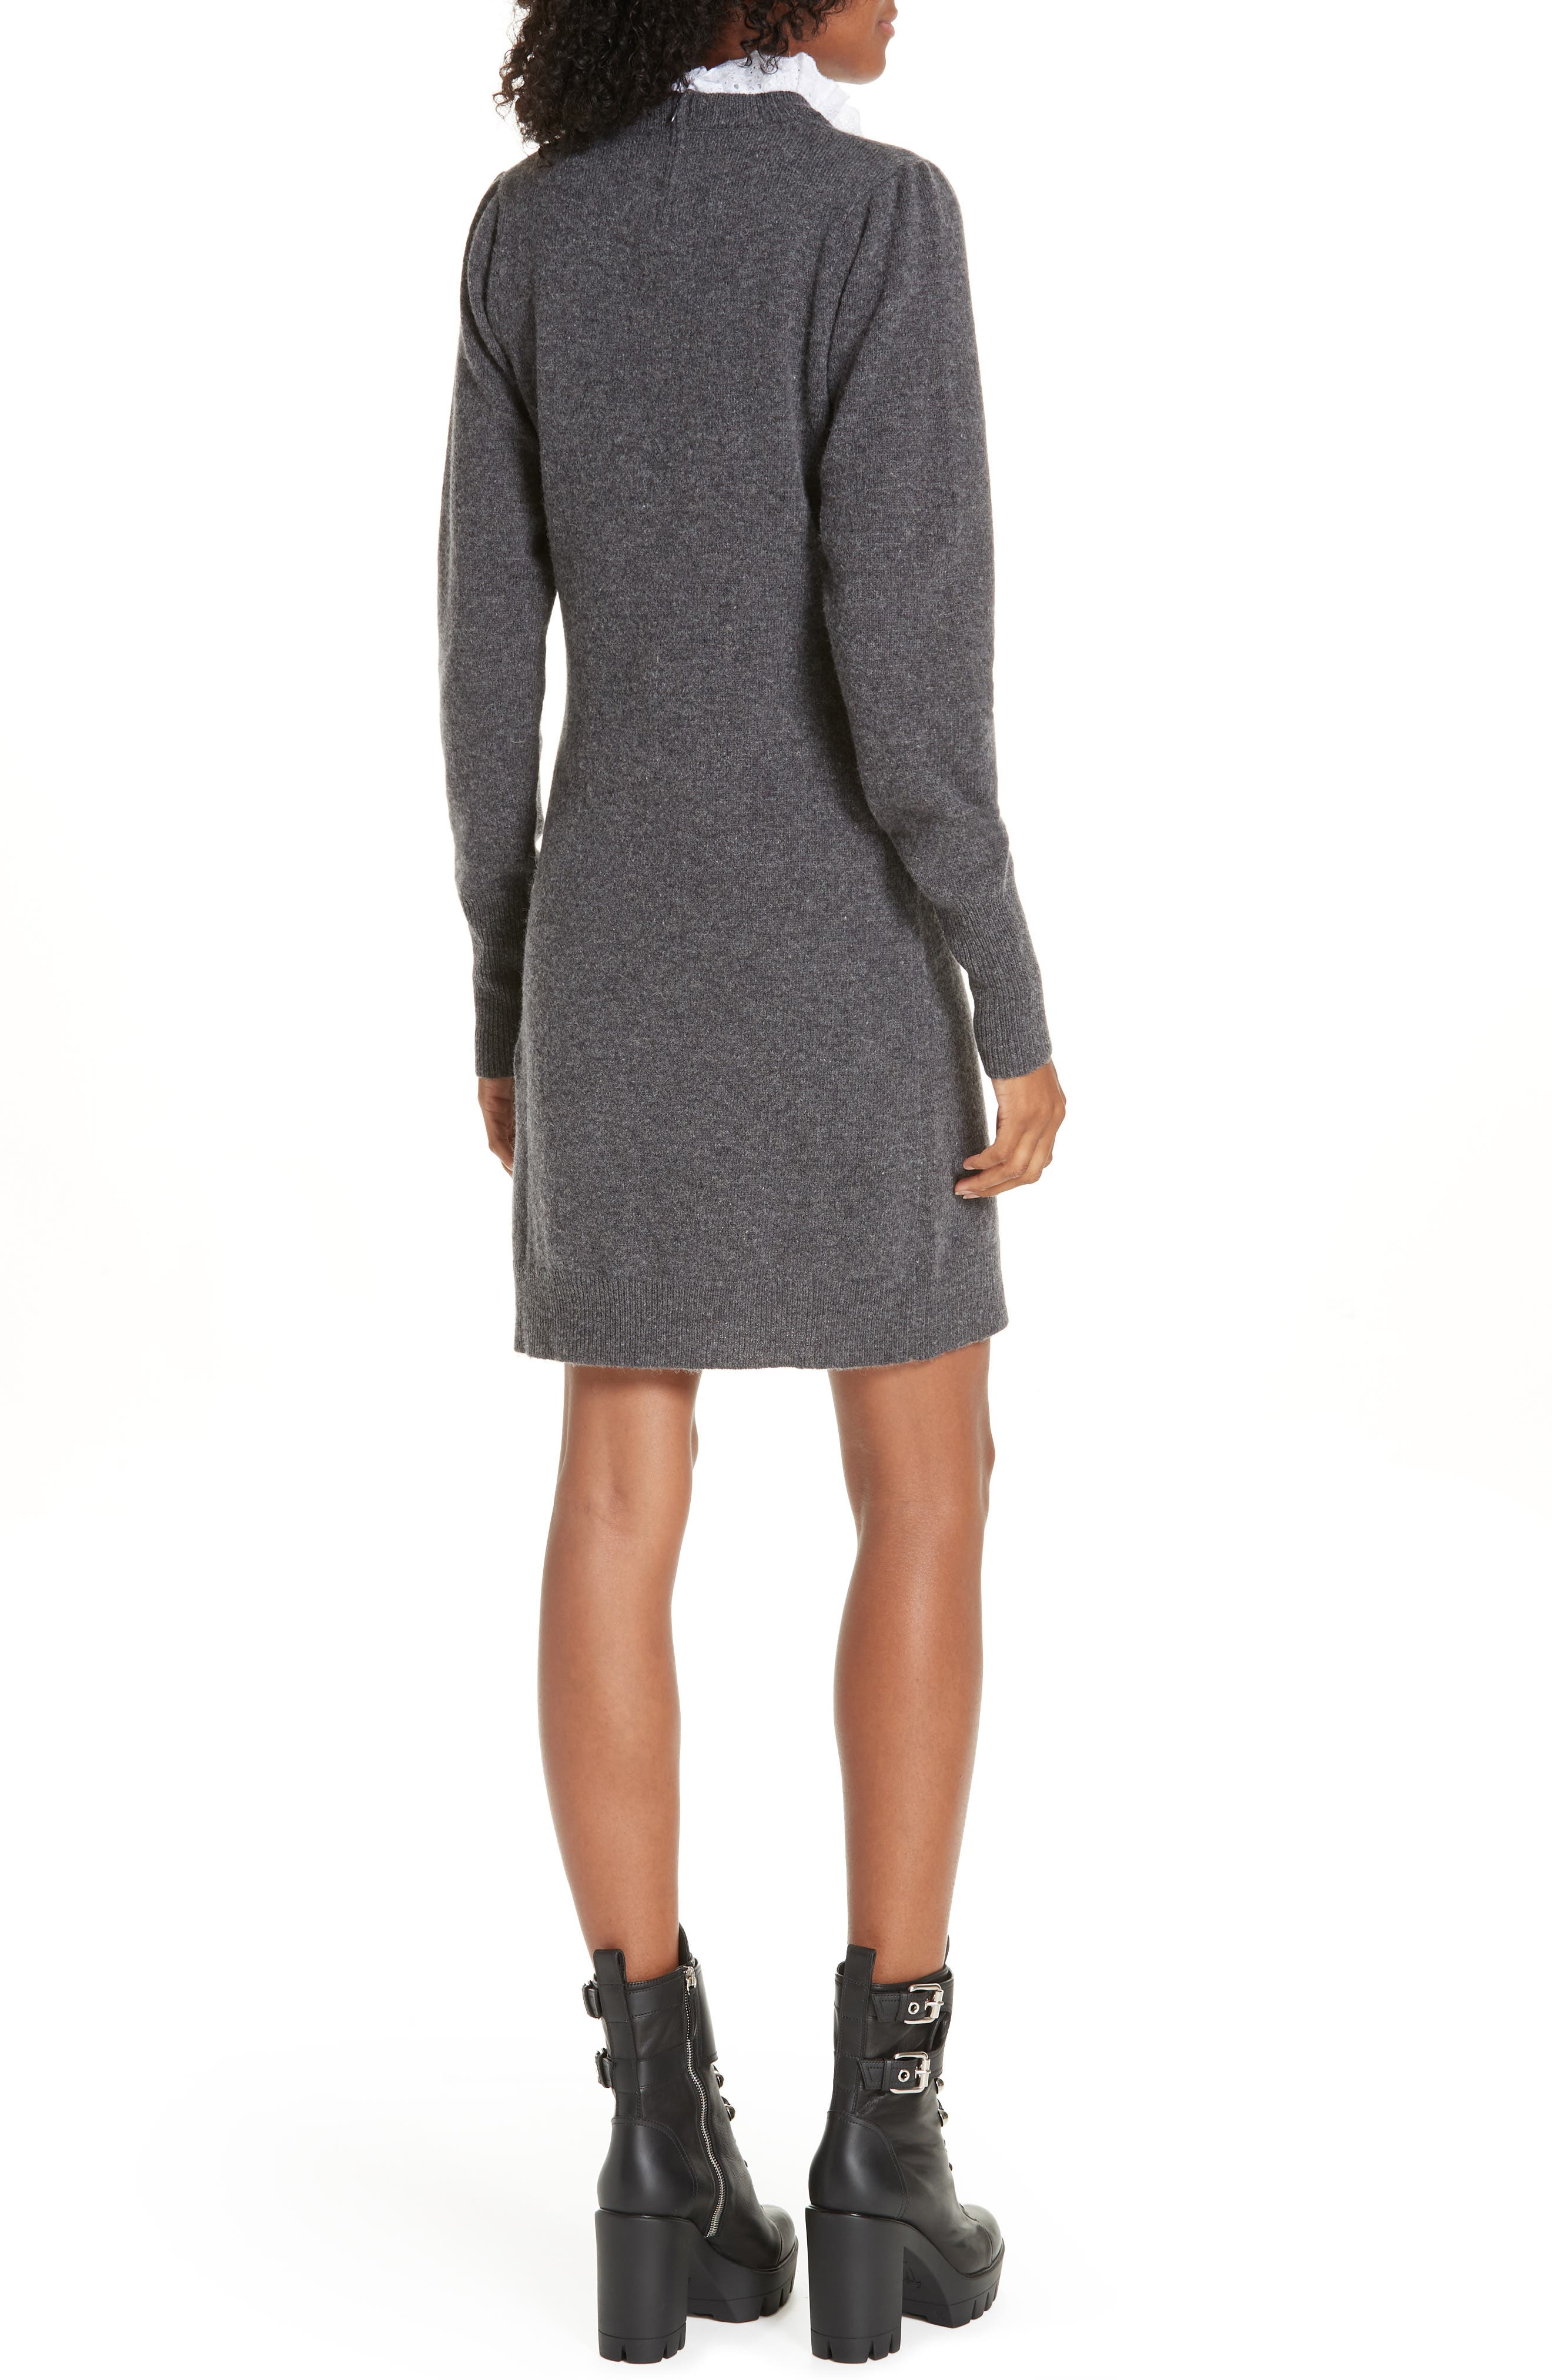 Ancolie Eyelet Collar Sweater Dress,                             Alternate thumbnail 2, color,                             020